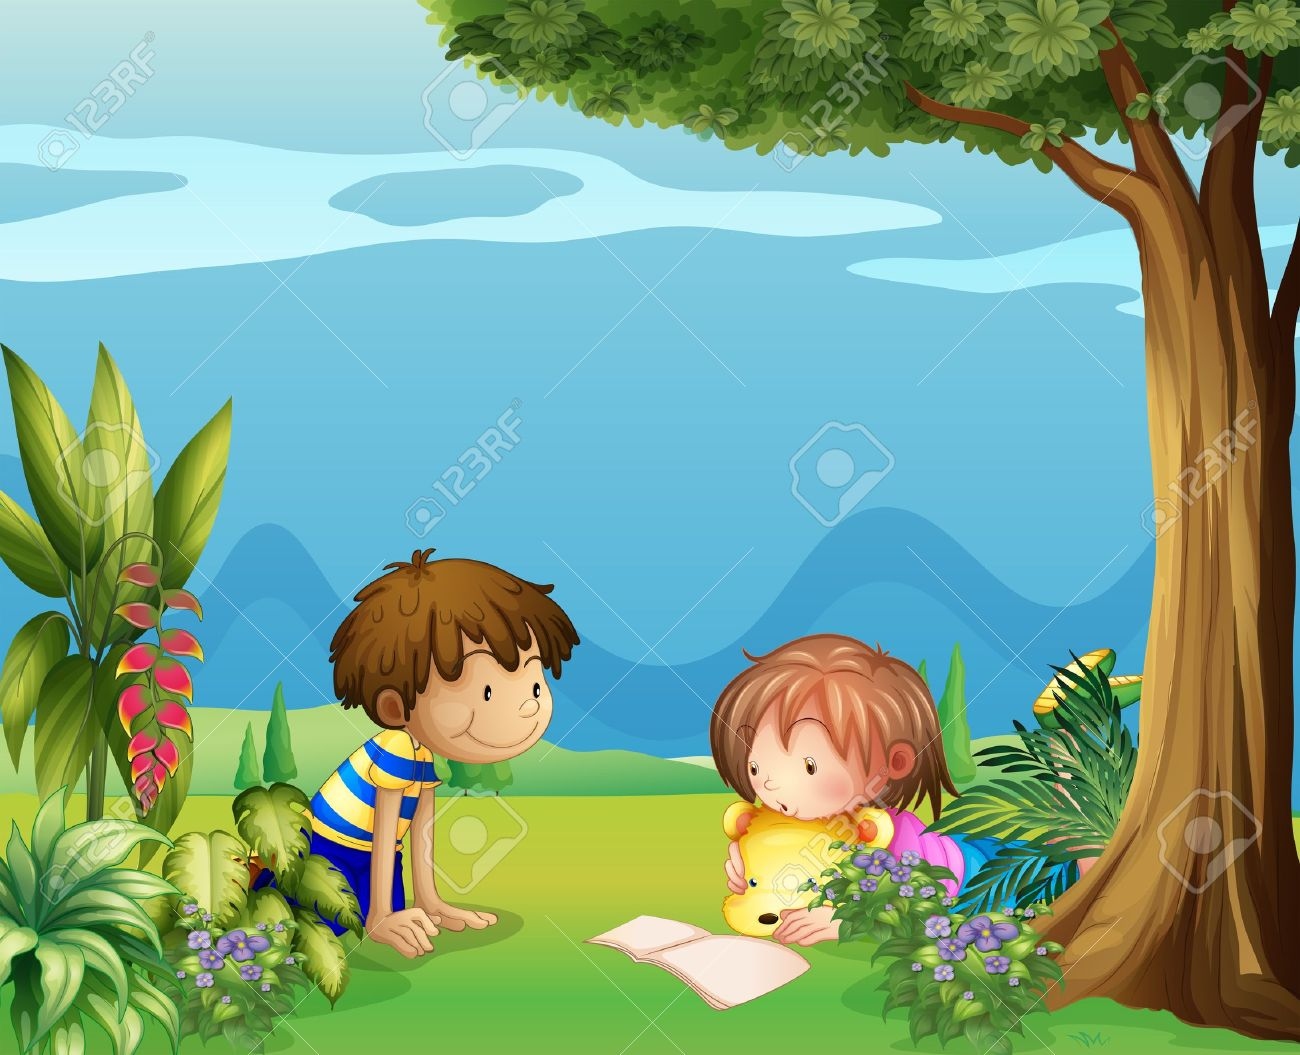 Illustration of a boy with a girl reading in the garden Stock Vector - 18053048